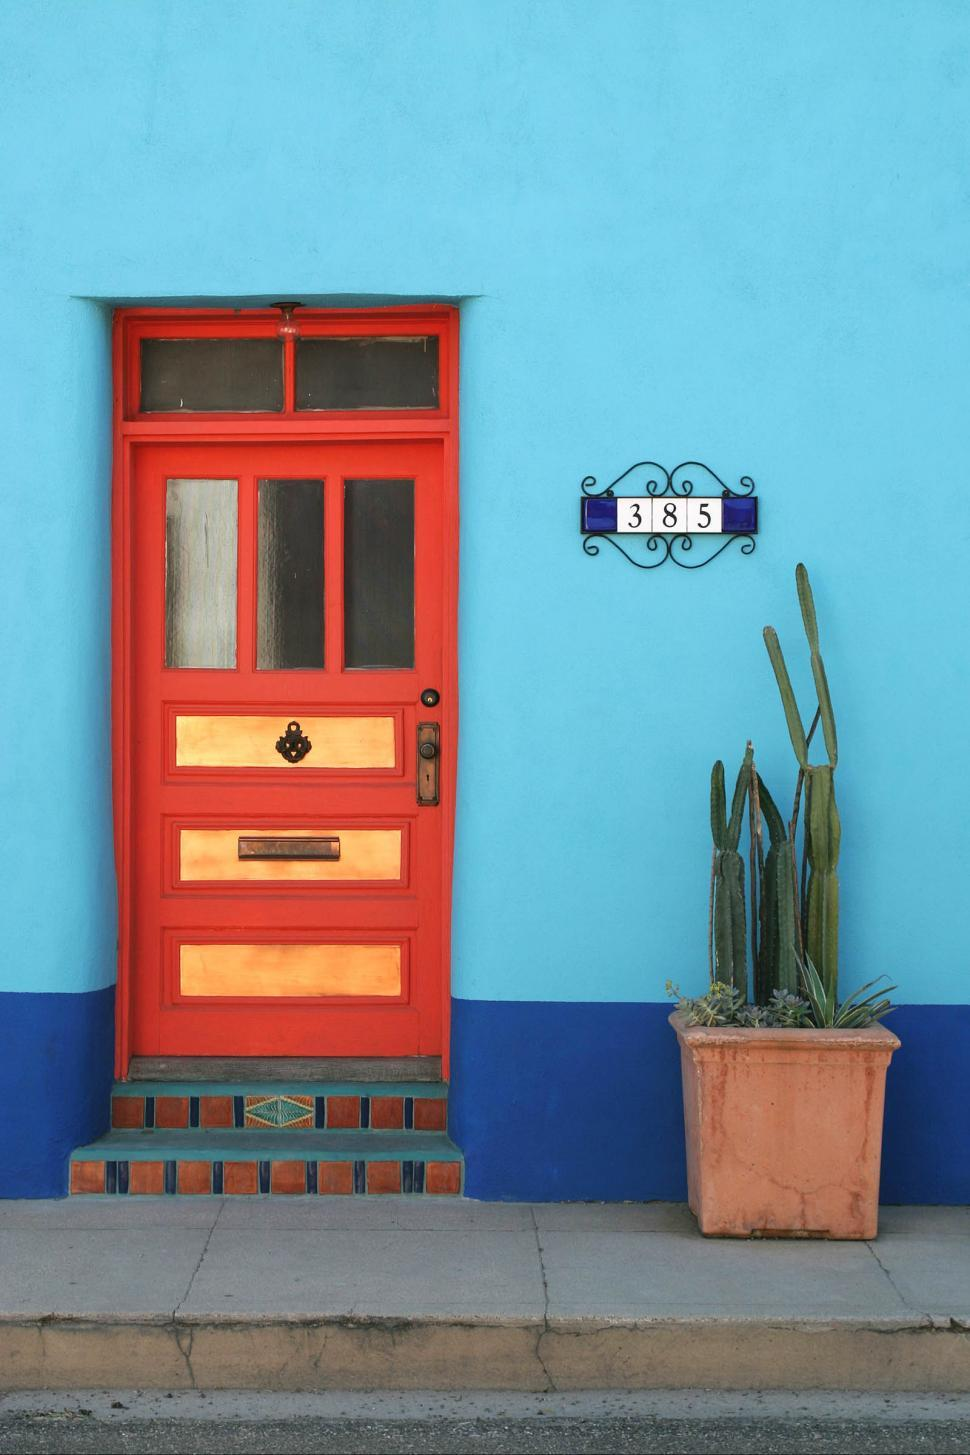 Download Free Stock Photo of colorful door doorway cactus planter sidewalk tile address steps window wall blue curb porch mail slot copper lock southwest tucson